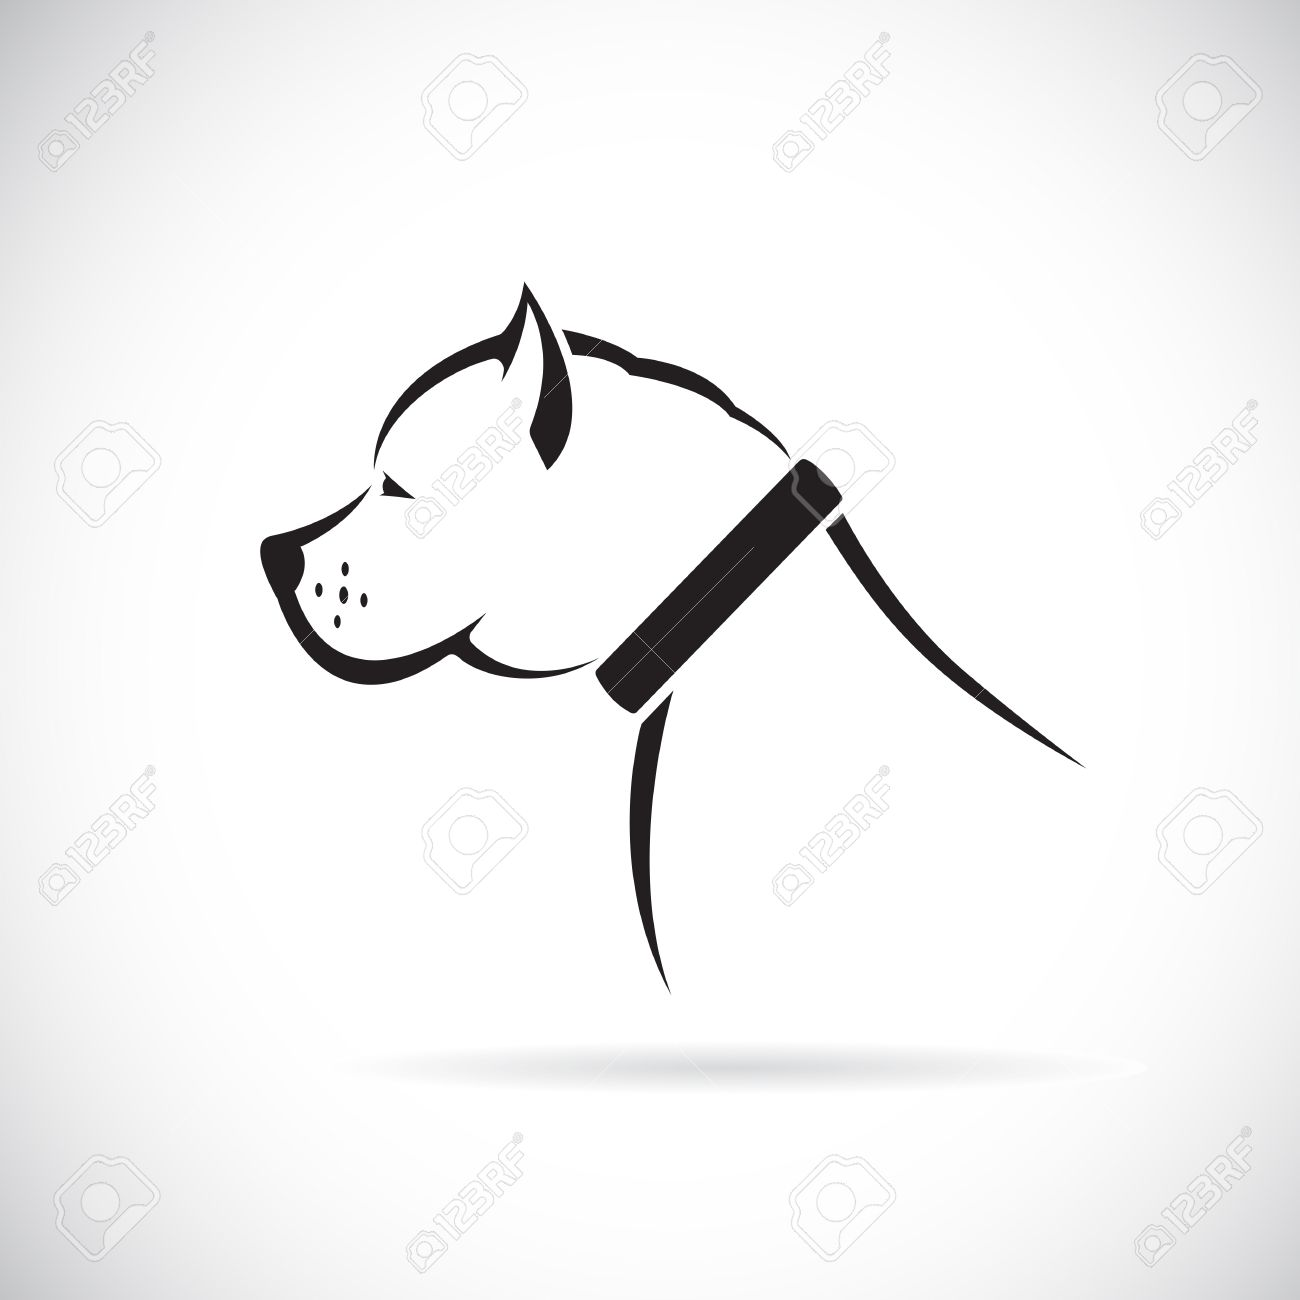 Vector Images Of Pitbull Dog On A White Background Royalty Free